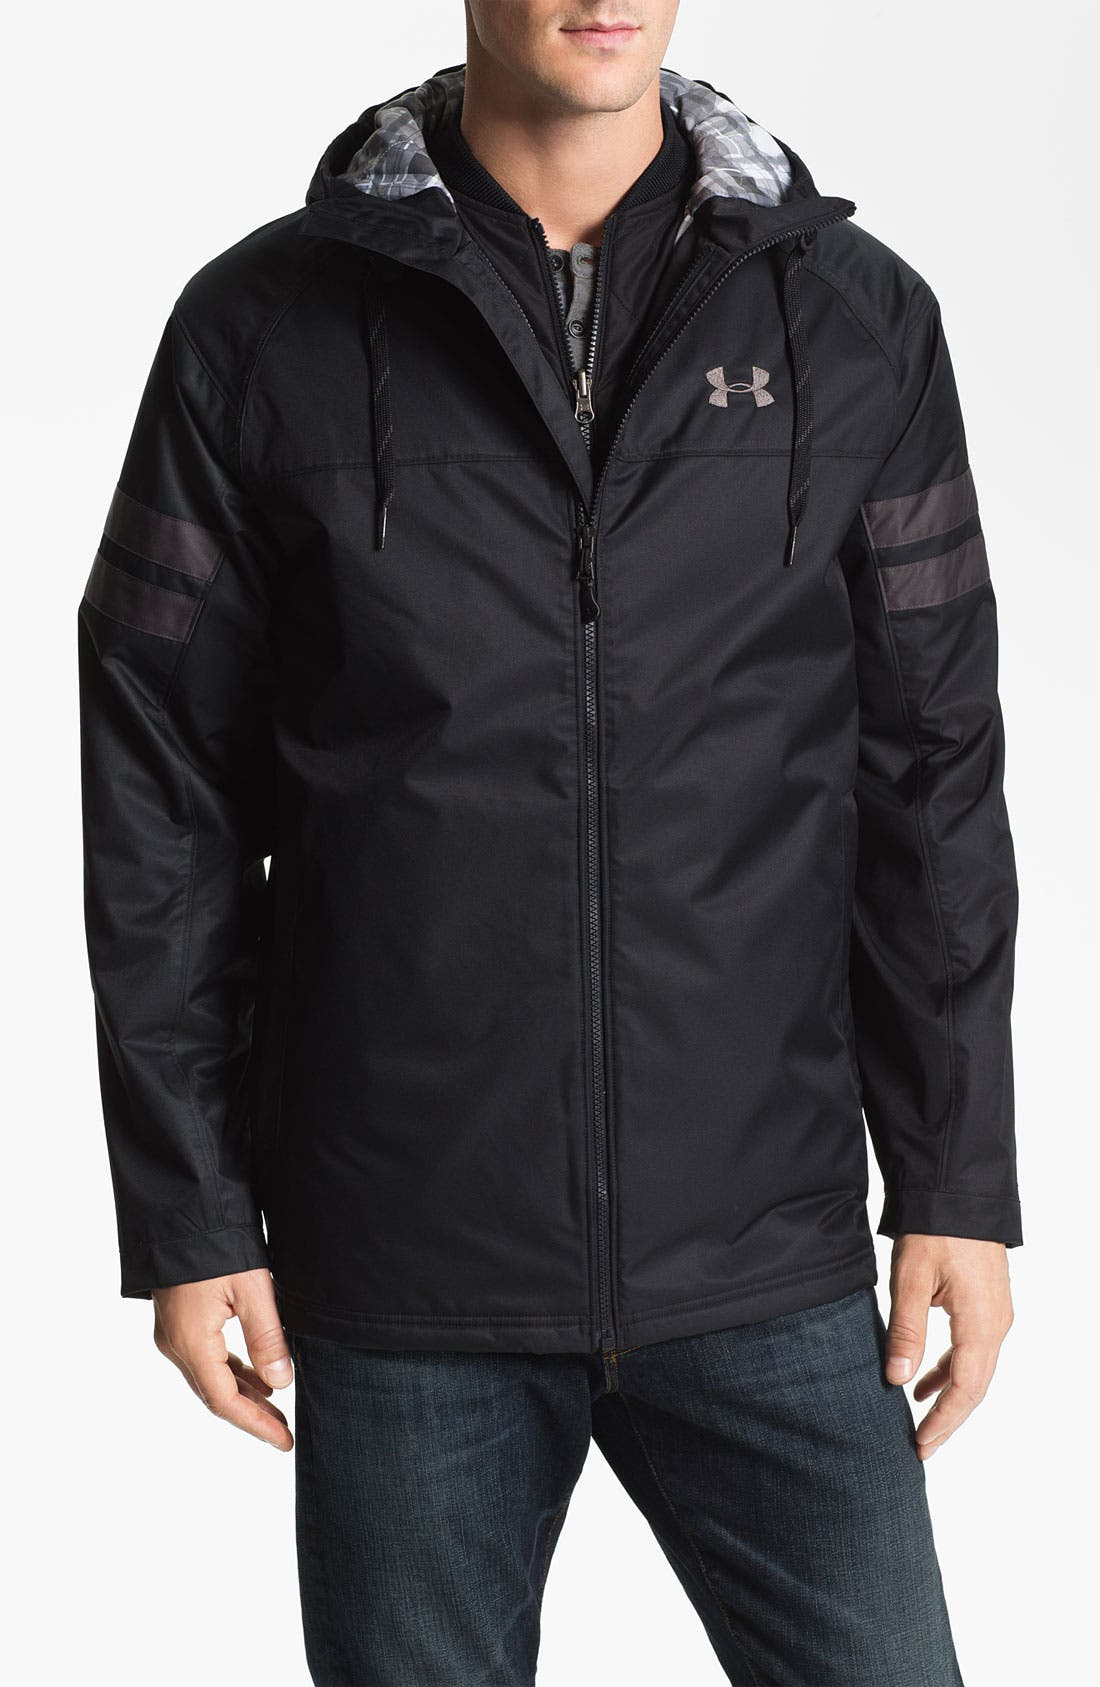 Alternate Image 1 Selected - Under Armour 'Universe Storm' 3-in-1 Jacket